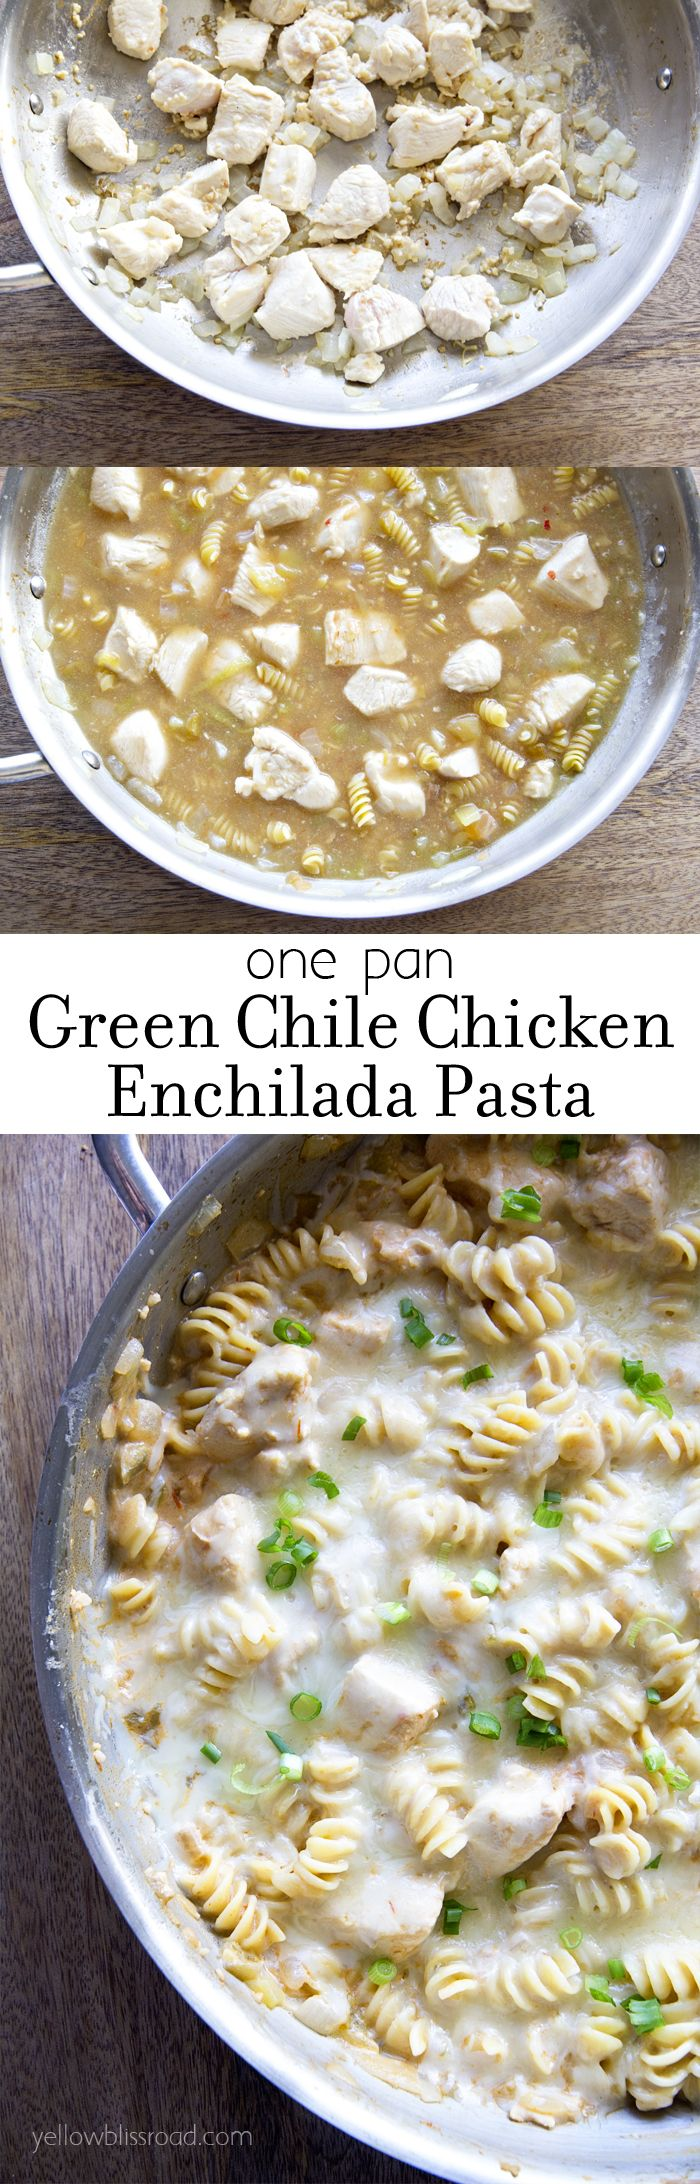 One Pan Green Chile Chicken Enchilada Pasta! A quick and delicious meal with EASY clean up!